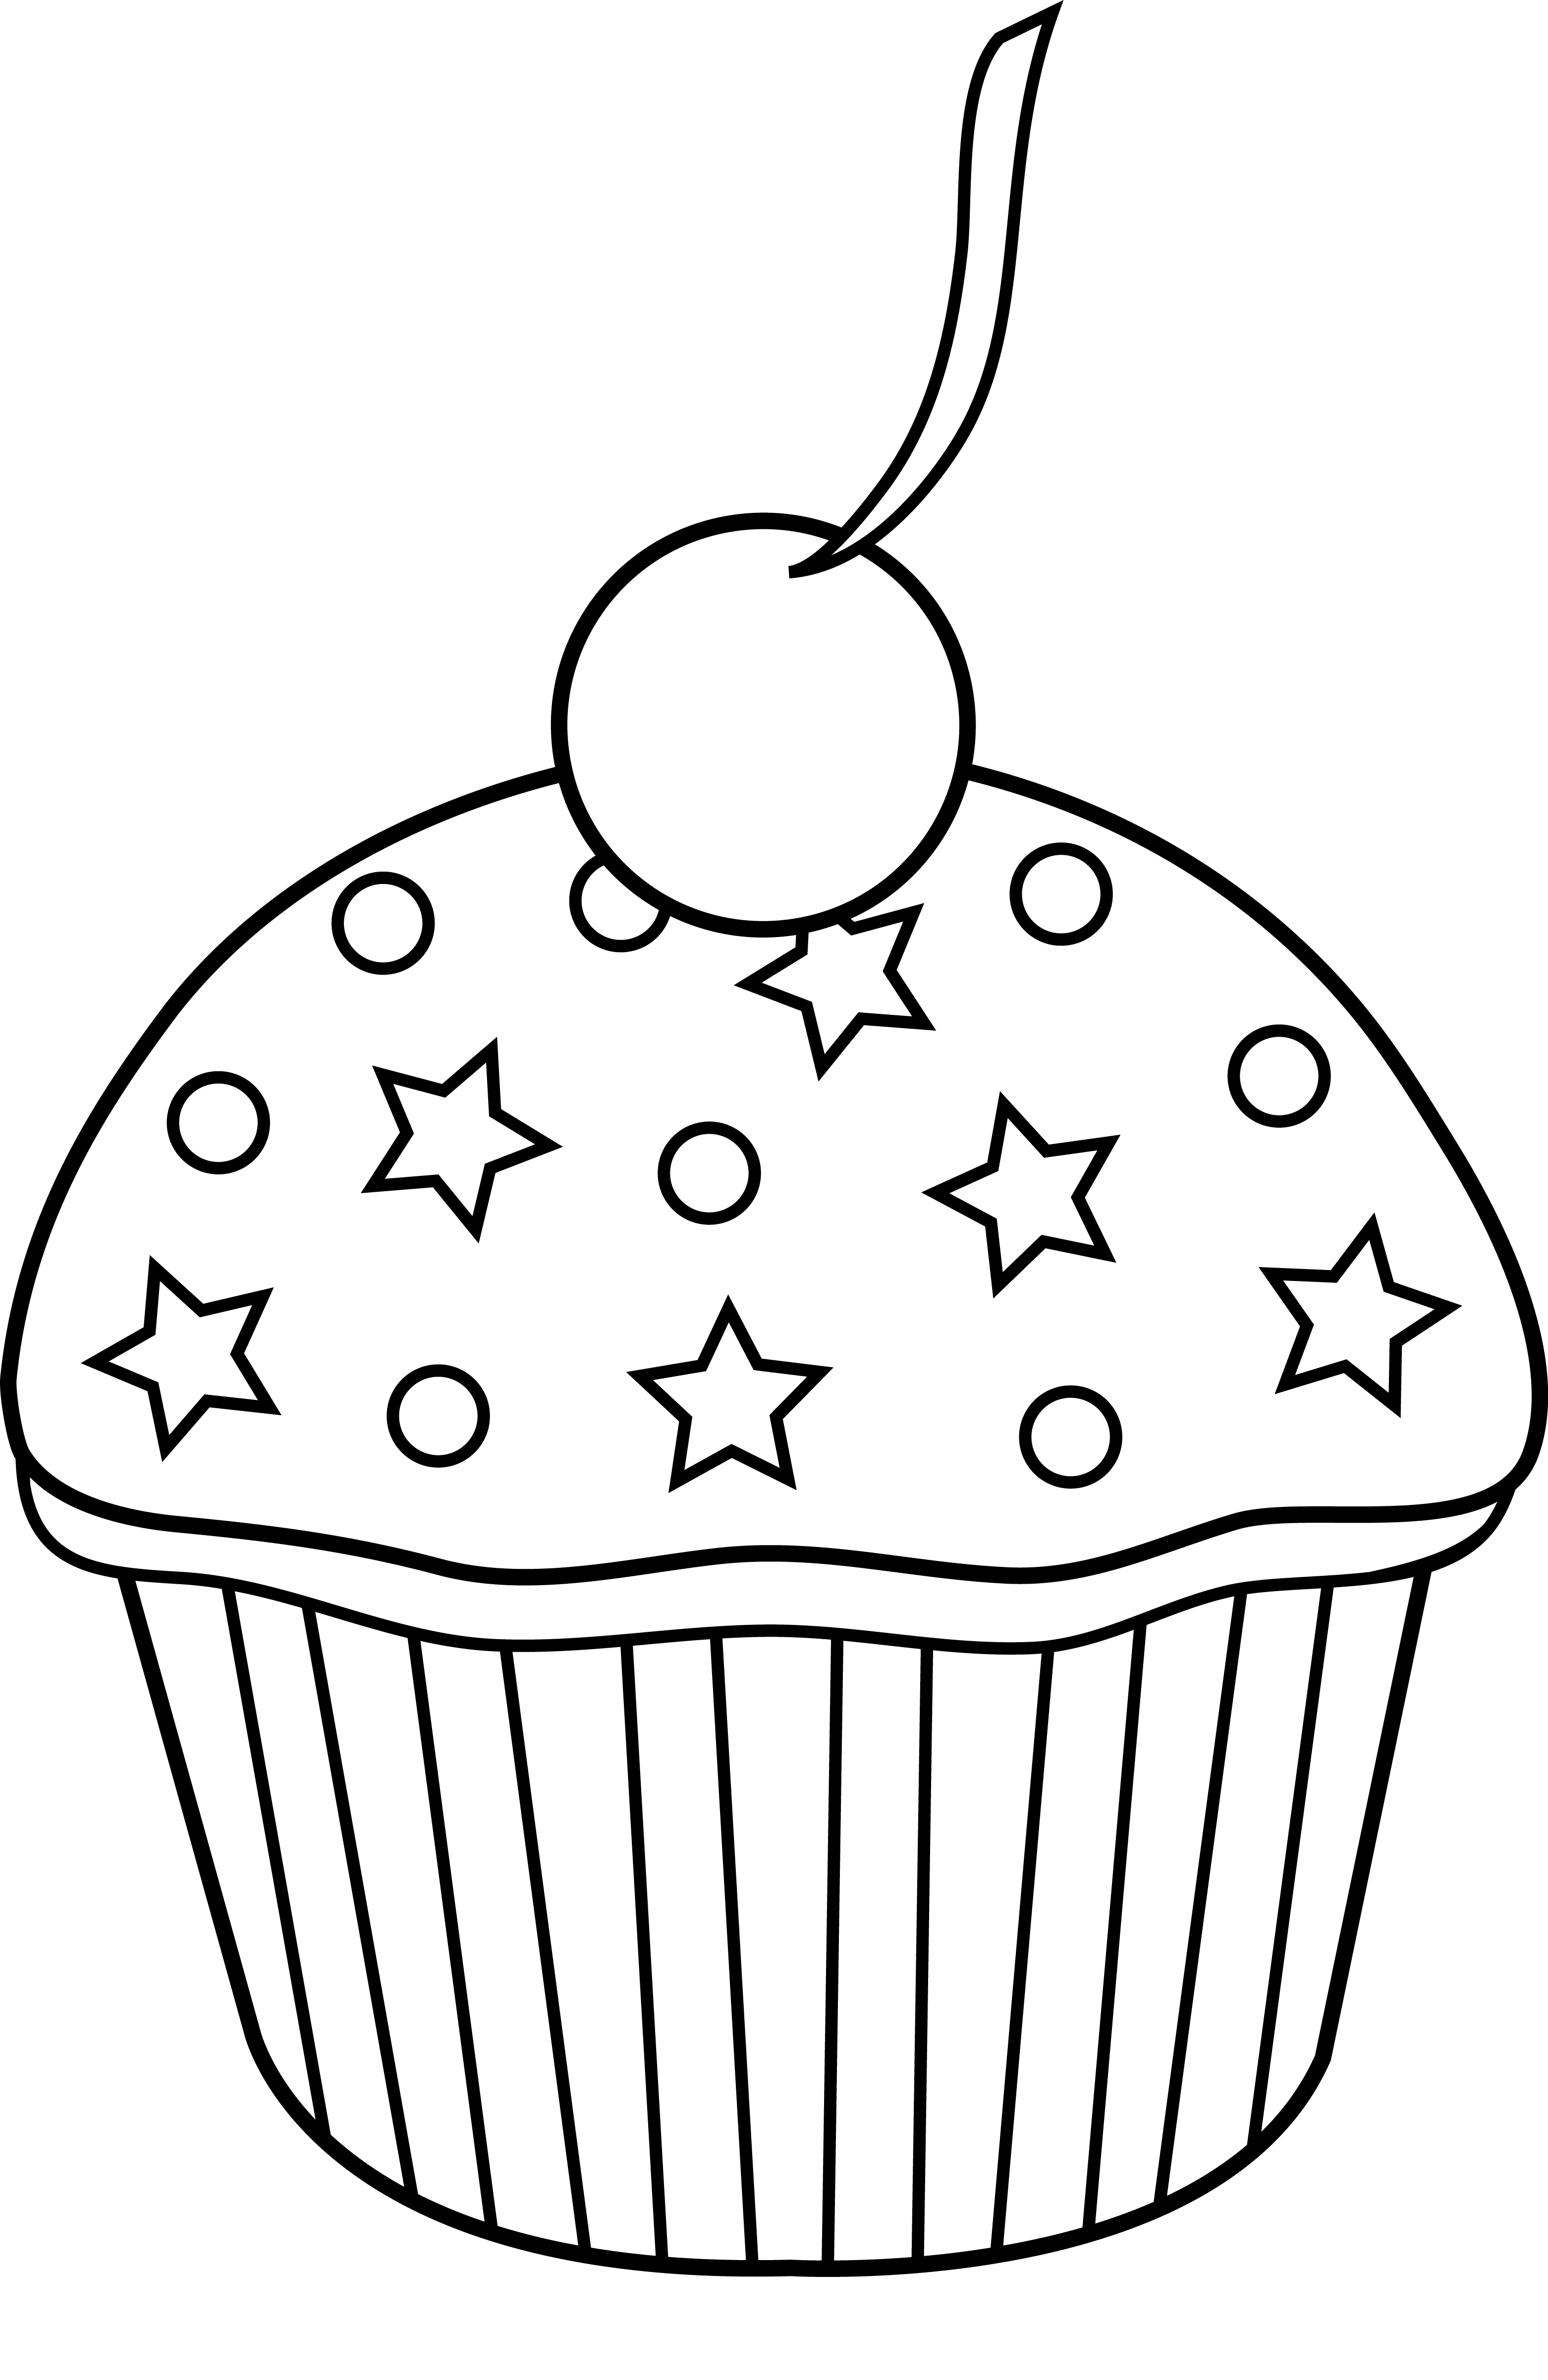 Black and White Cupcake Clip Art Free